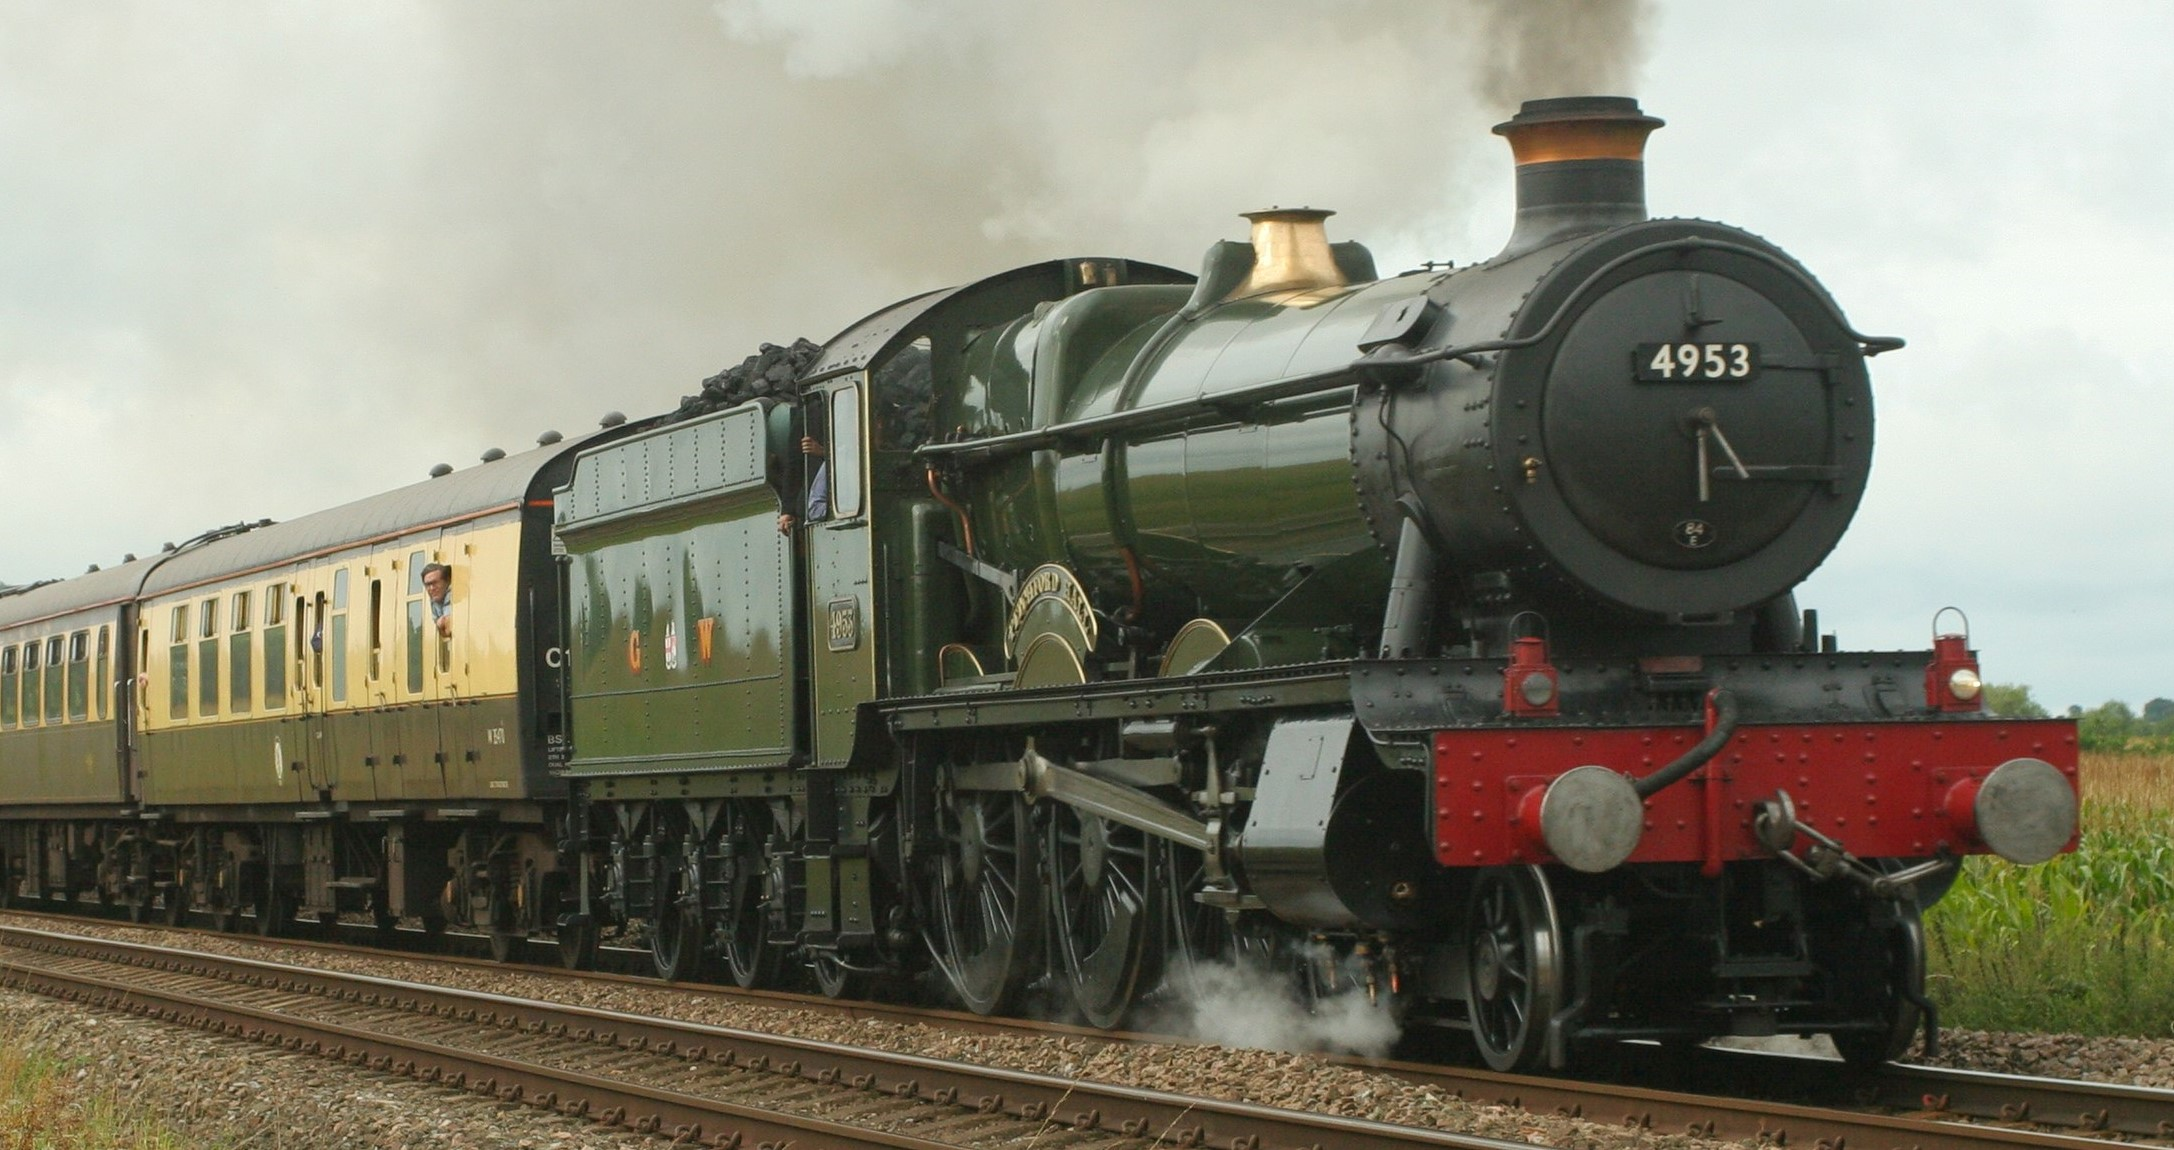 4953 'Pitchford Hall' at Rearsby in August 2009. ©Duncan Harris